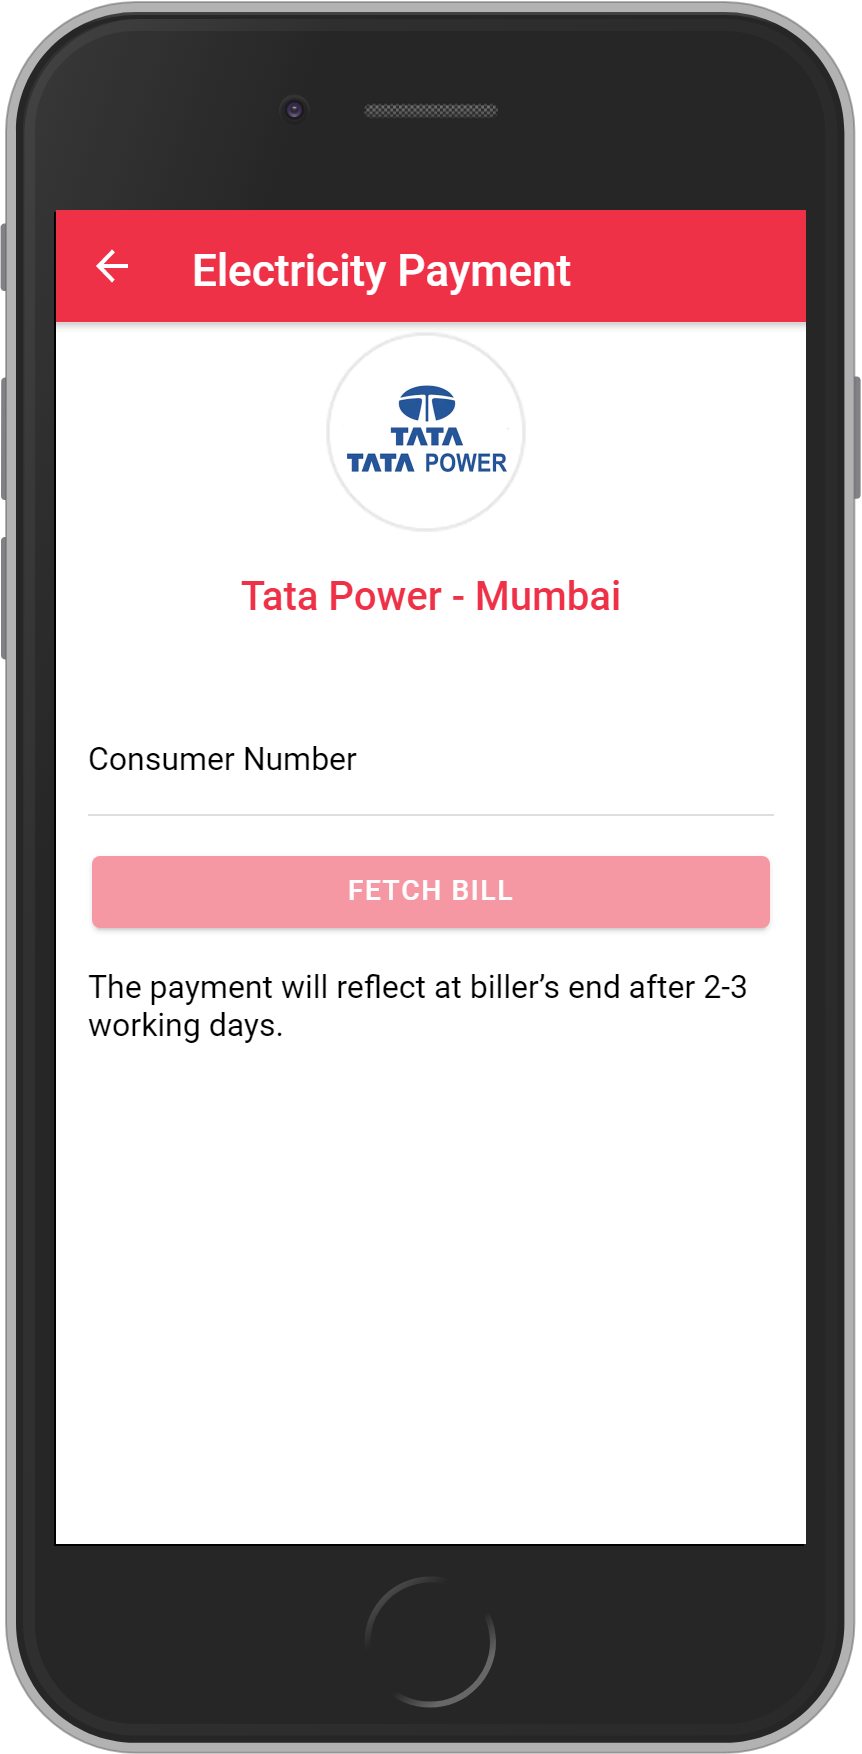 Get UNLIMITED <b>0.1%</b> CASHBACK on Tata Power – Mumbai Bill Payment.